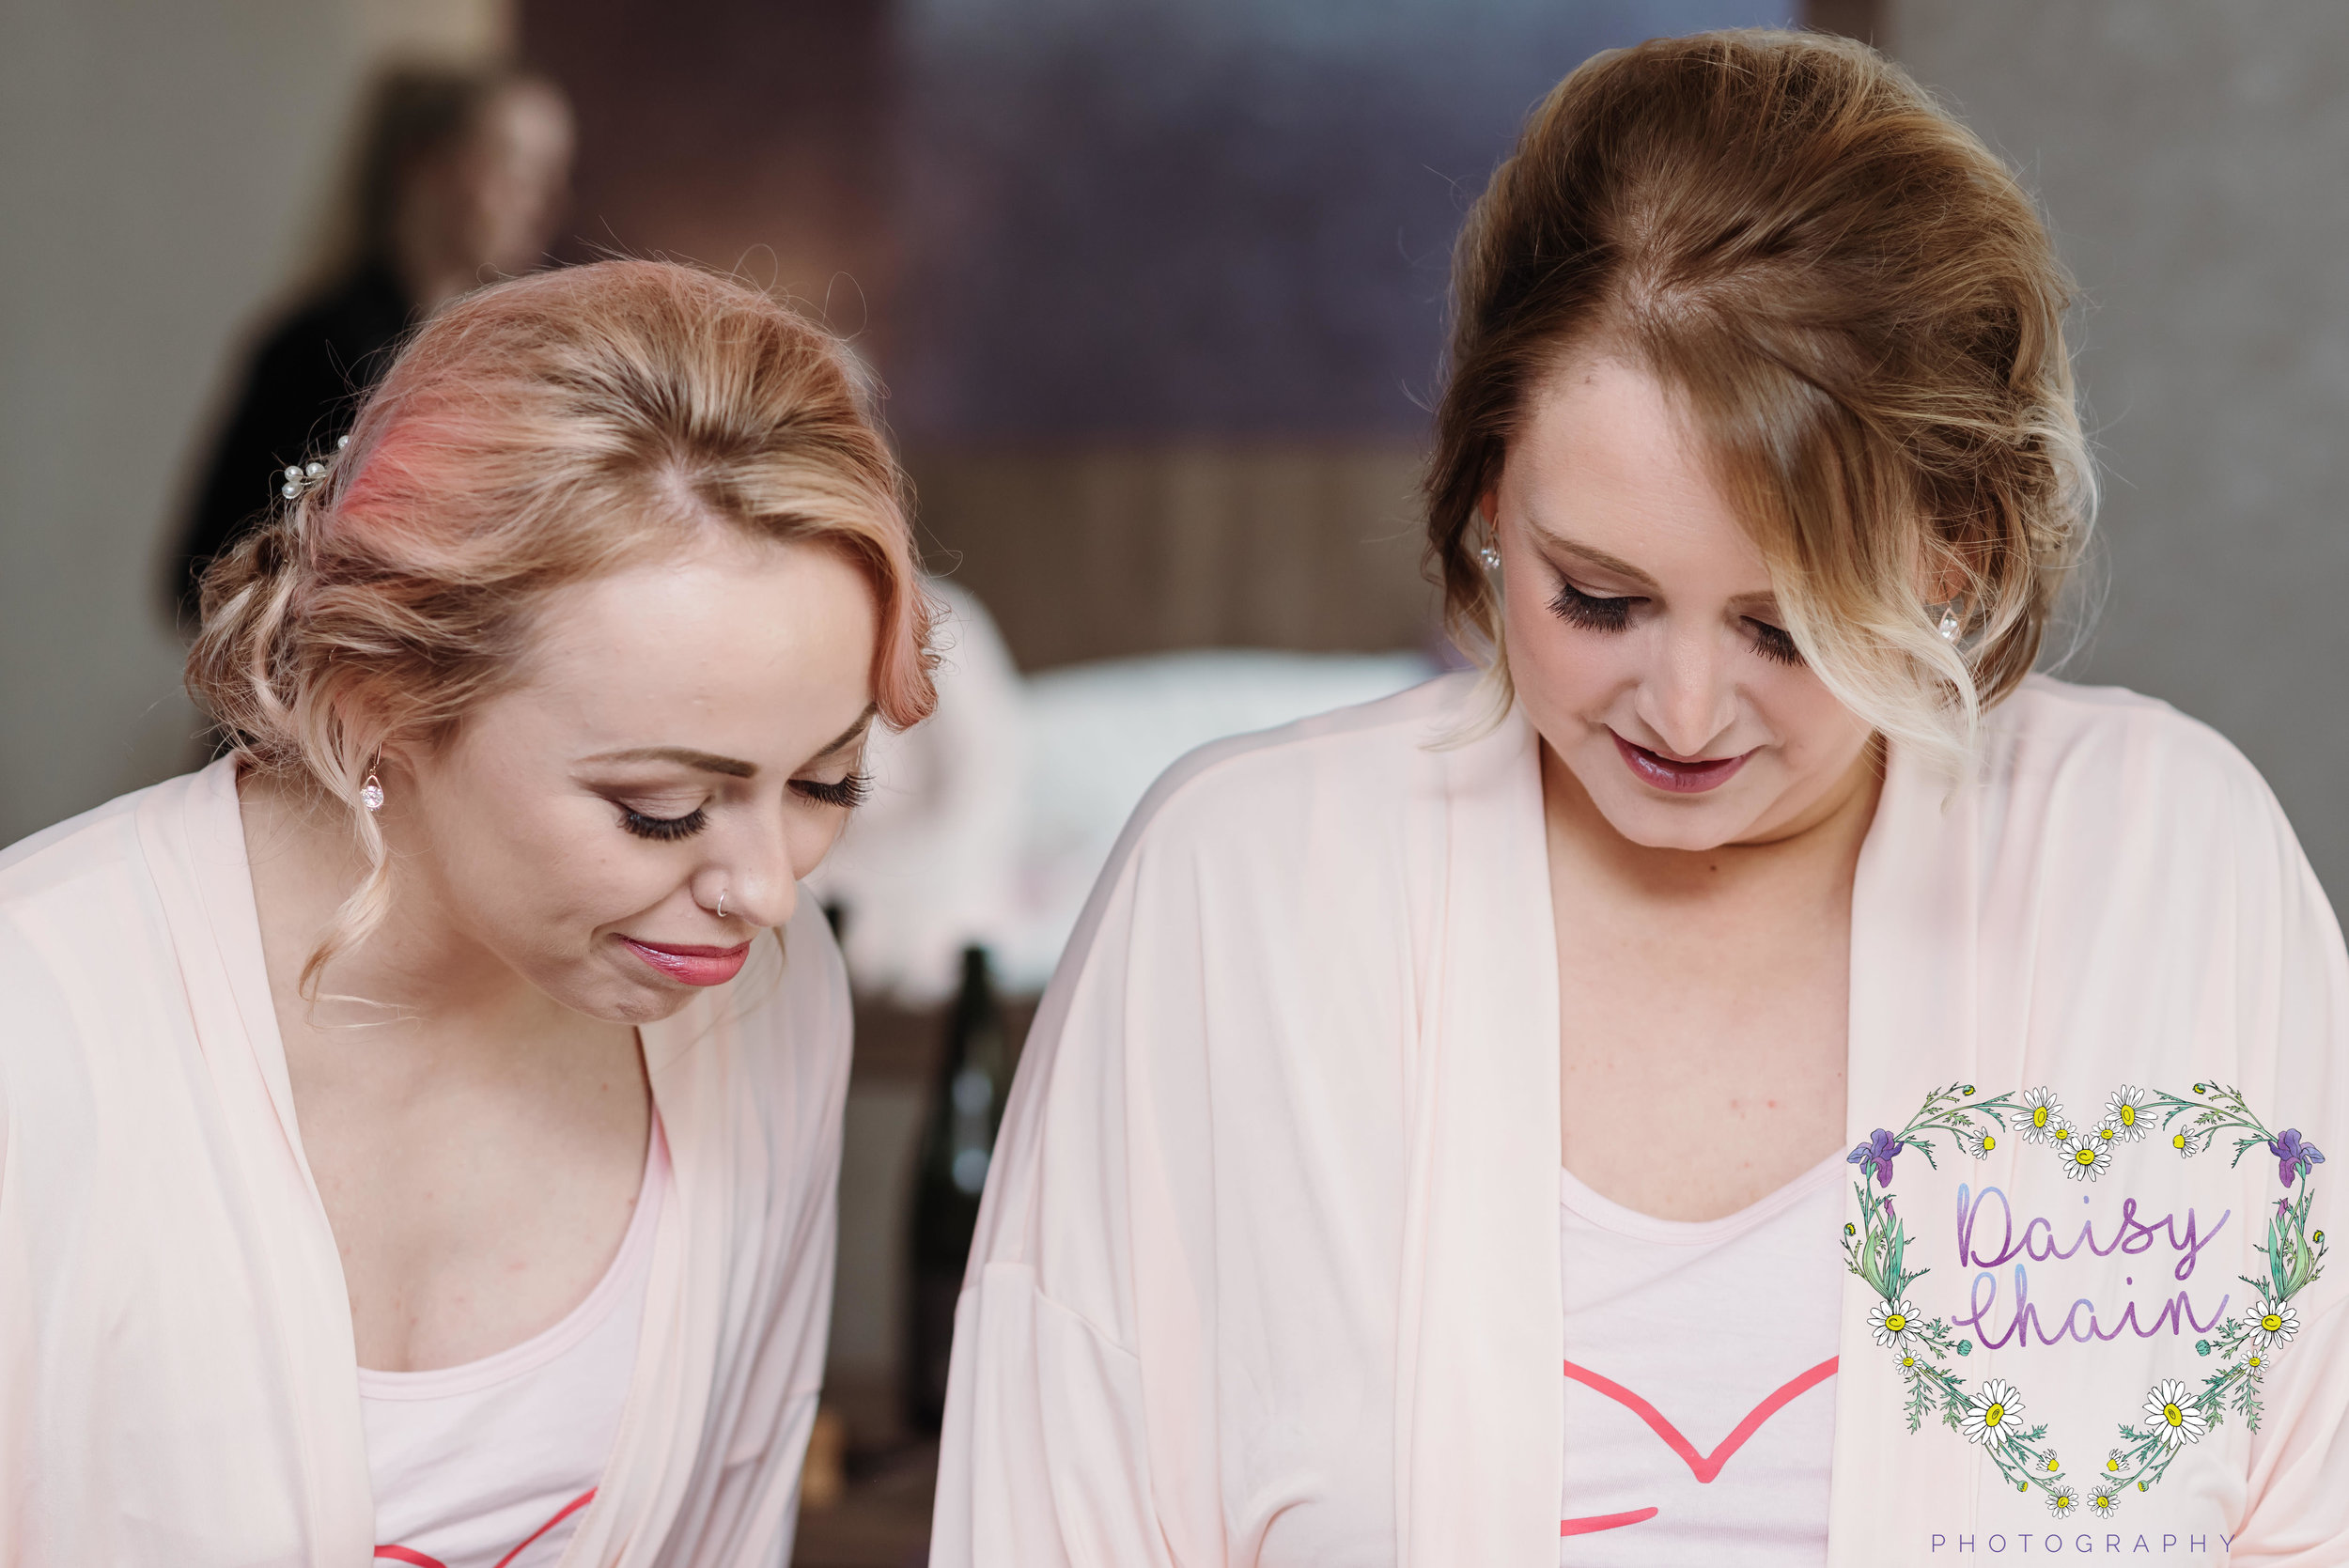 Bridal preparation - bridesmaids